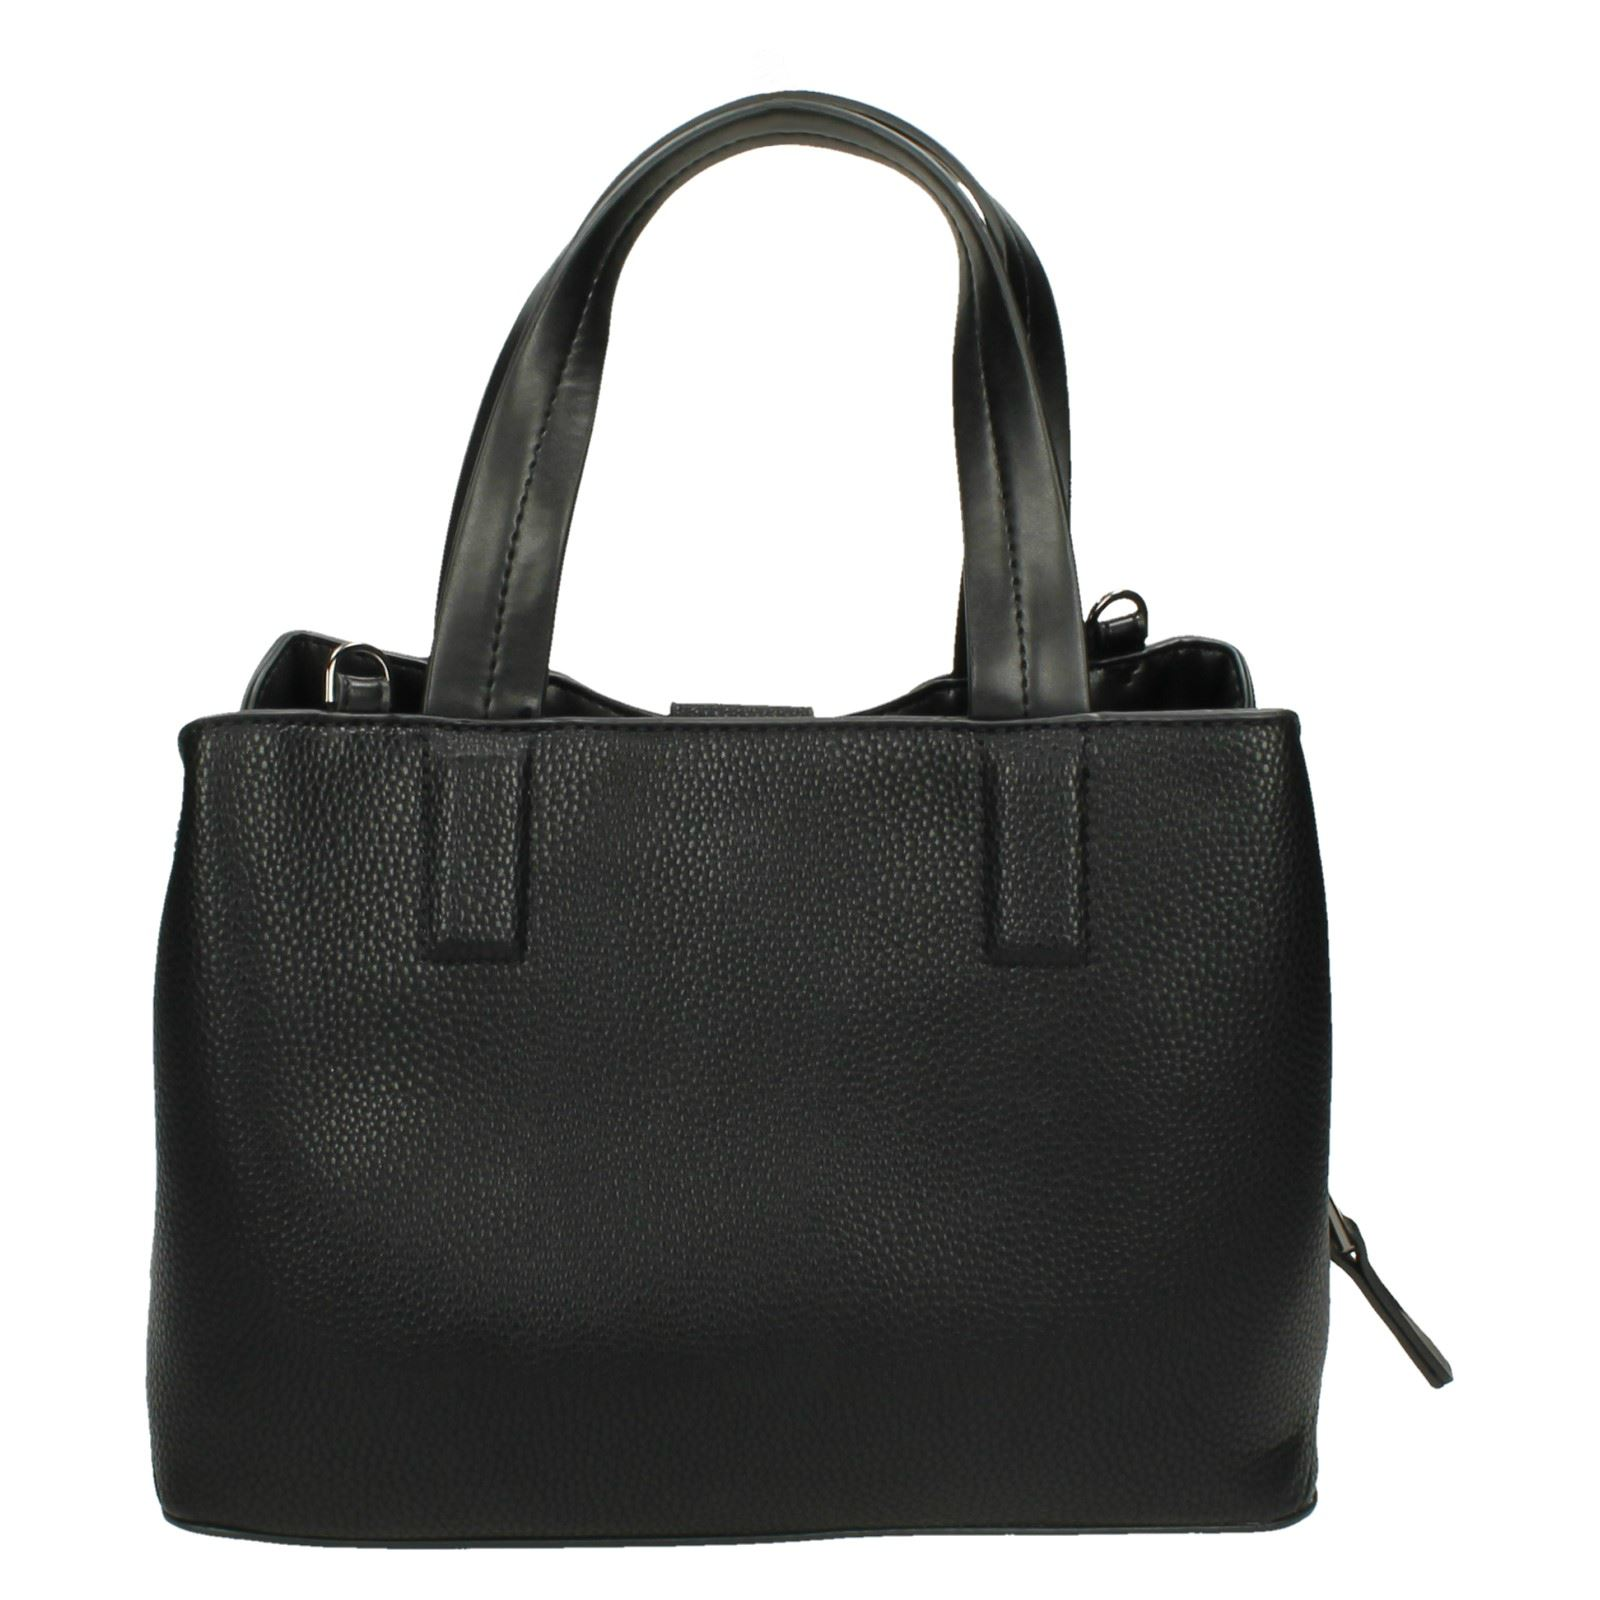 202a3a5bd Ladies Clarks Synthetic Tote Bags Magnetize Me Black One Size for ...